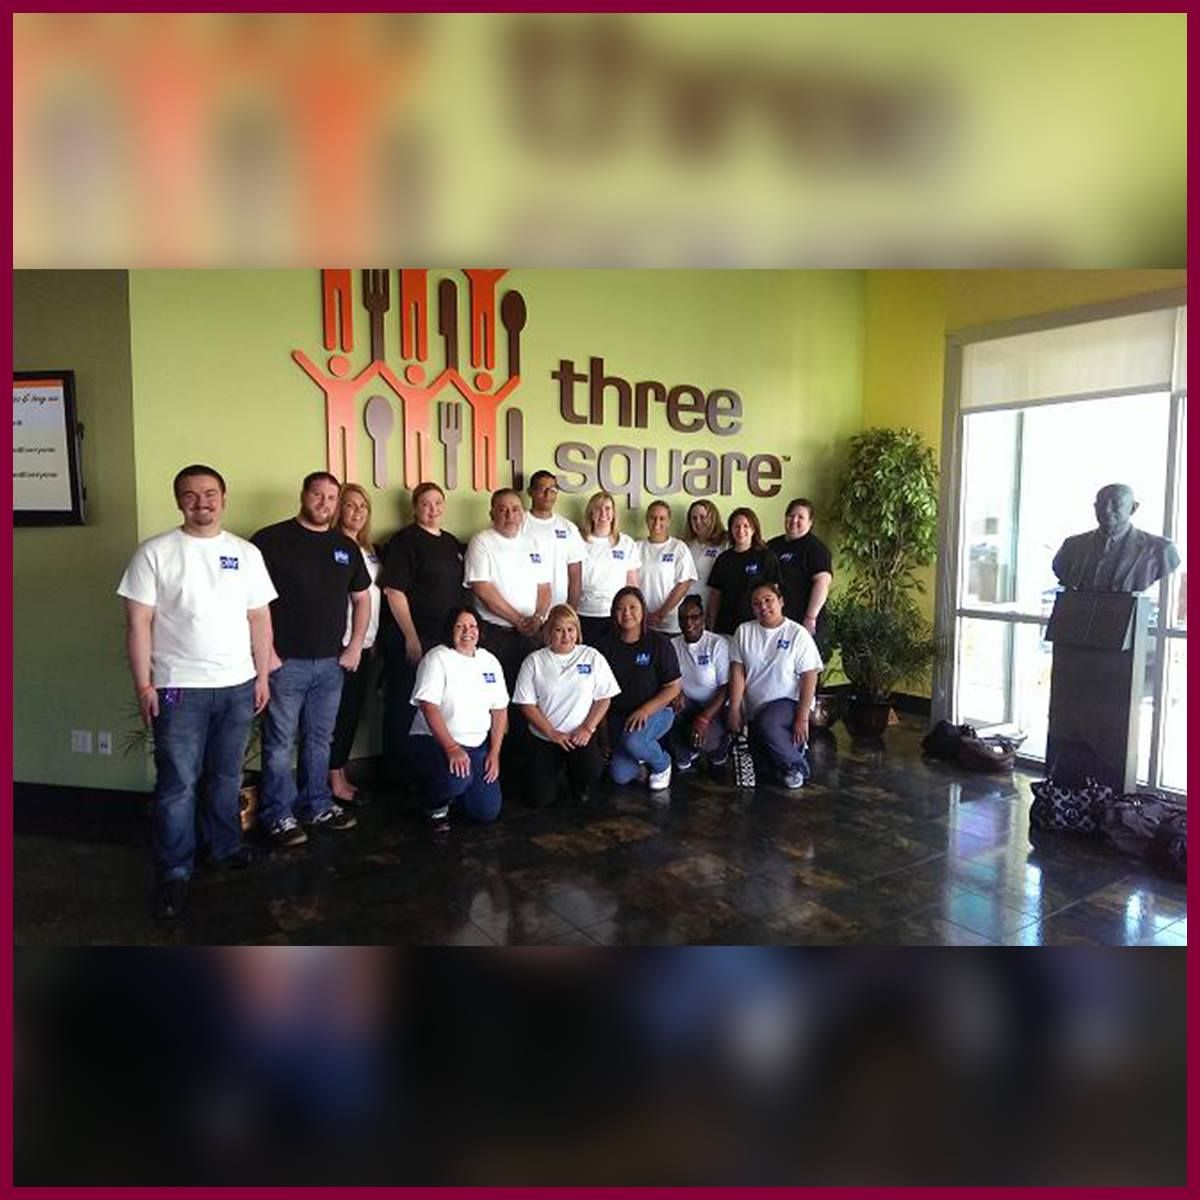 Our Las Vegas managers recently packed over 3,500 lunches for children in need. Big thank you to all involved! Your time is much appreciated.